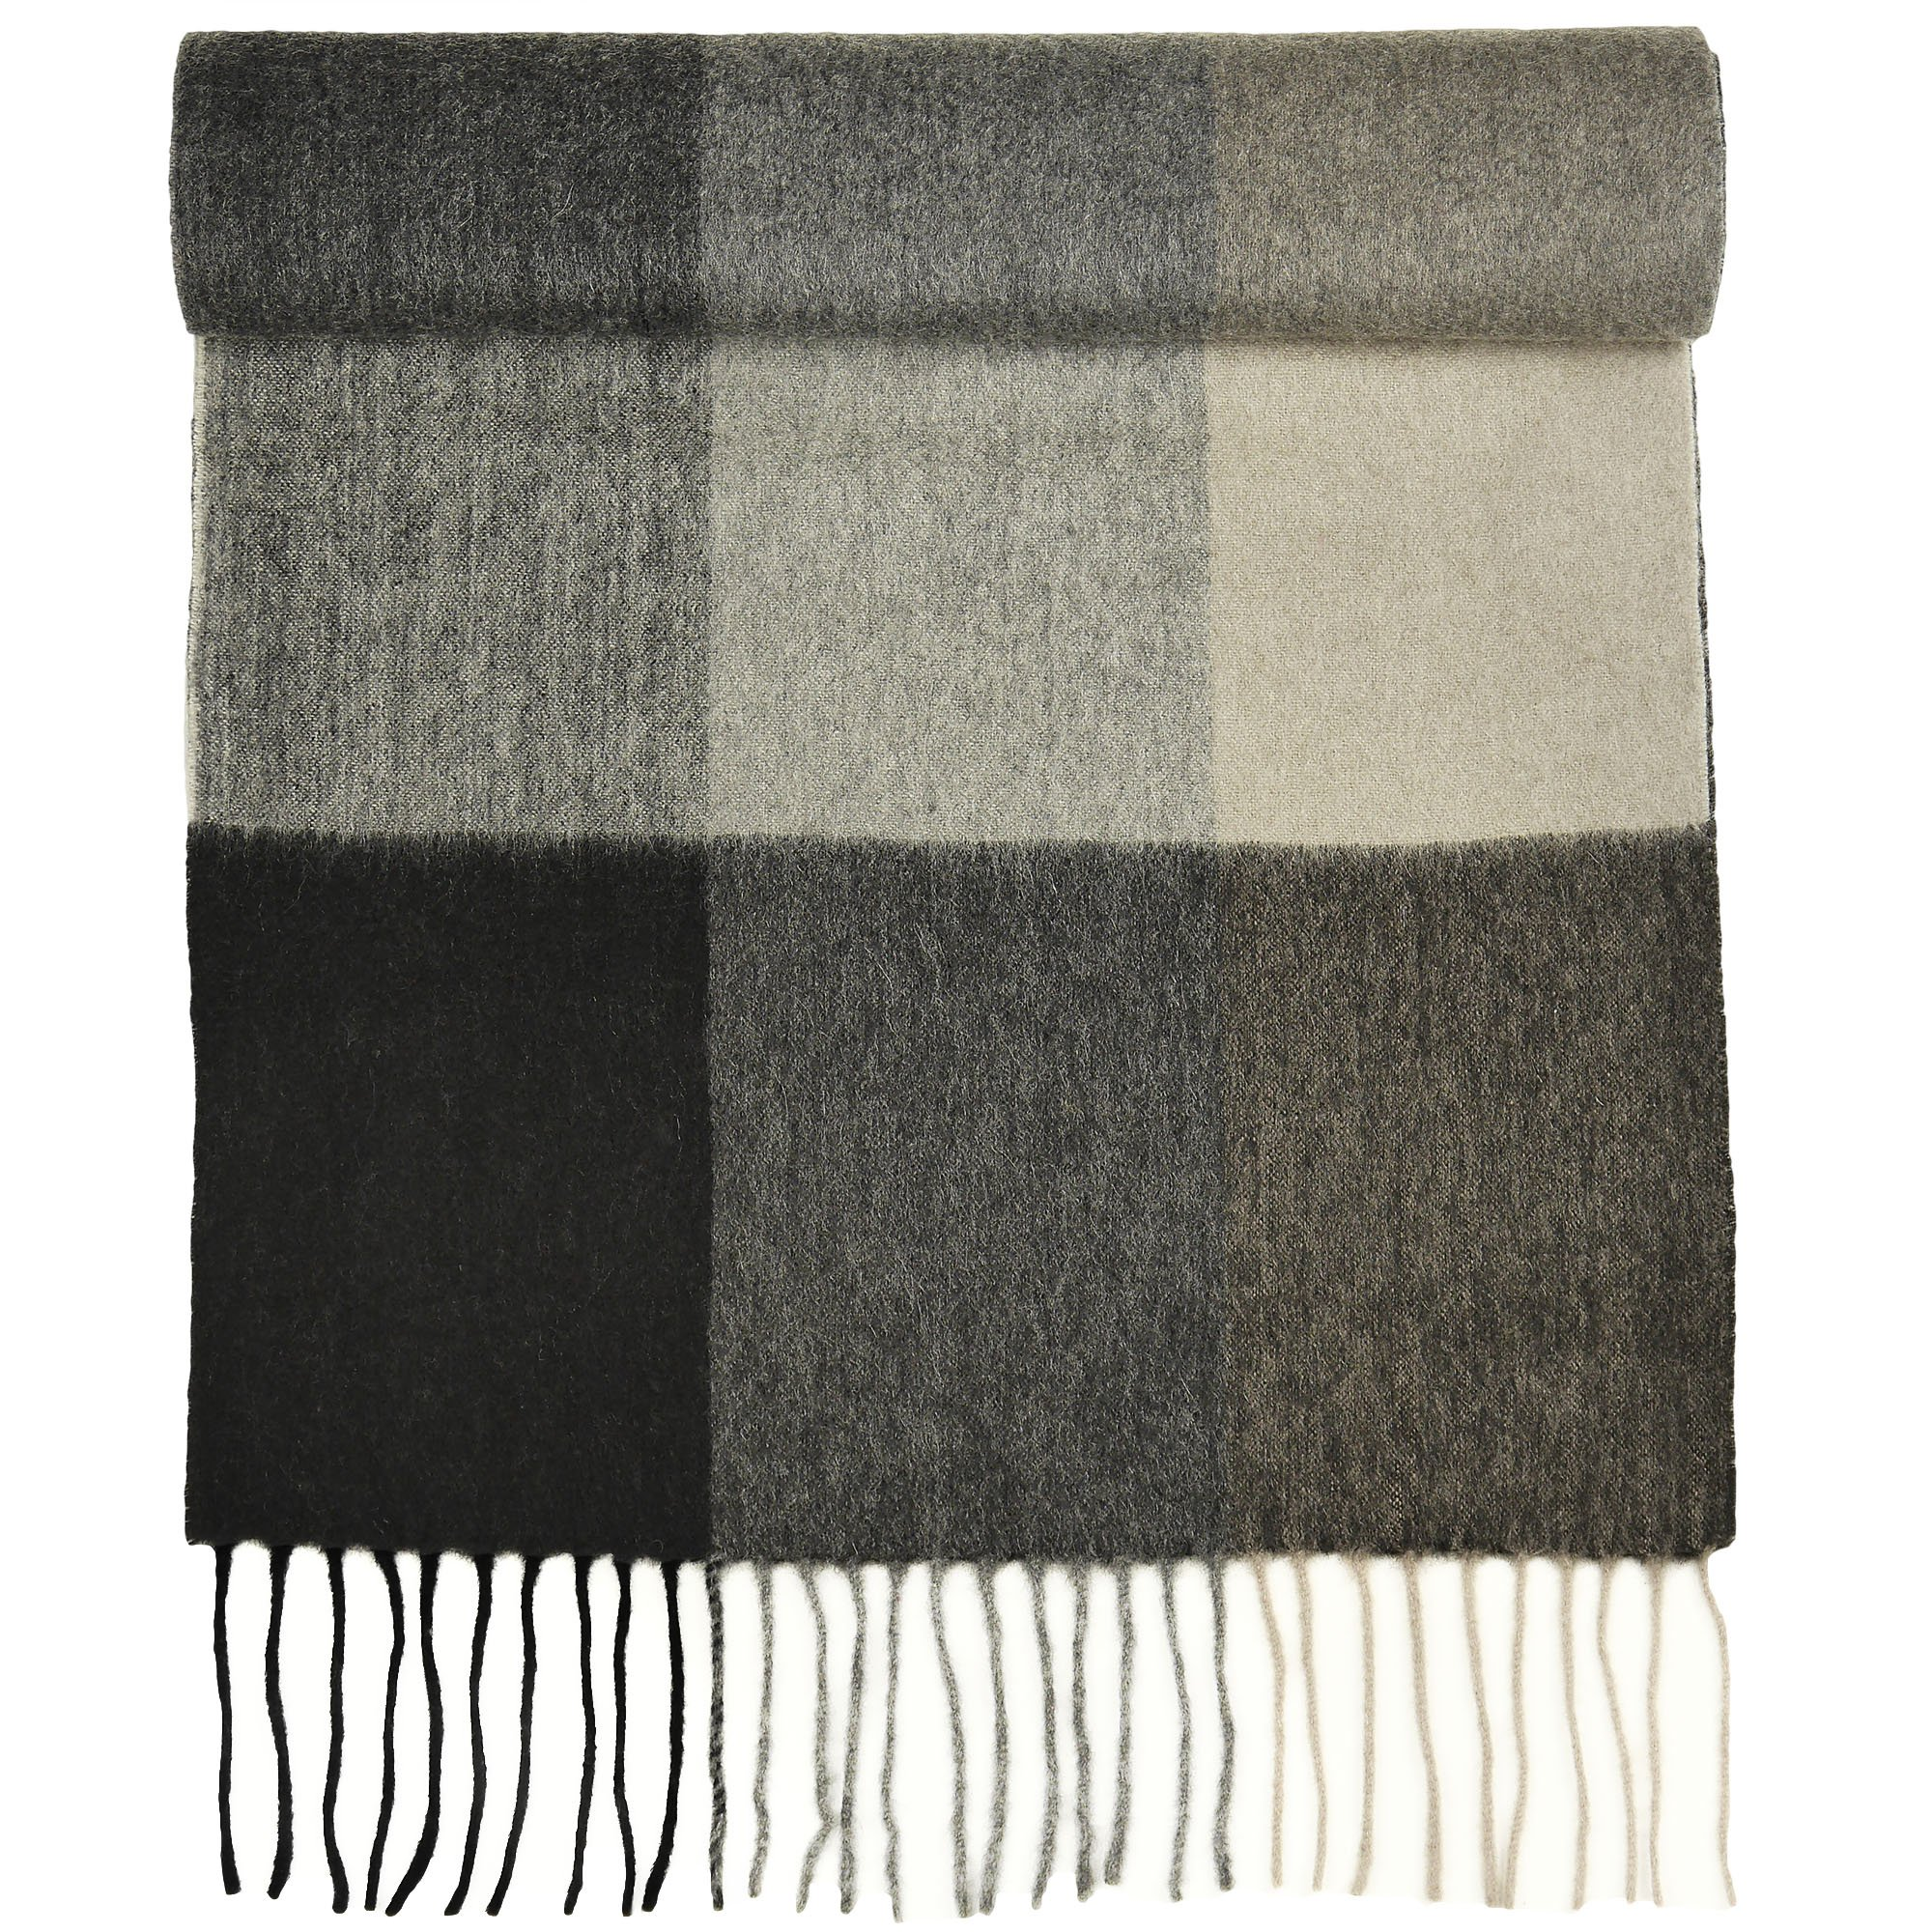 100% Pure Cashmere Scarf for Women, Solid Colors and Plaids, Unisex, Gift Box, Various Sizes, by Candor and Class (Grey Boxes)